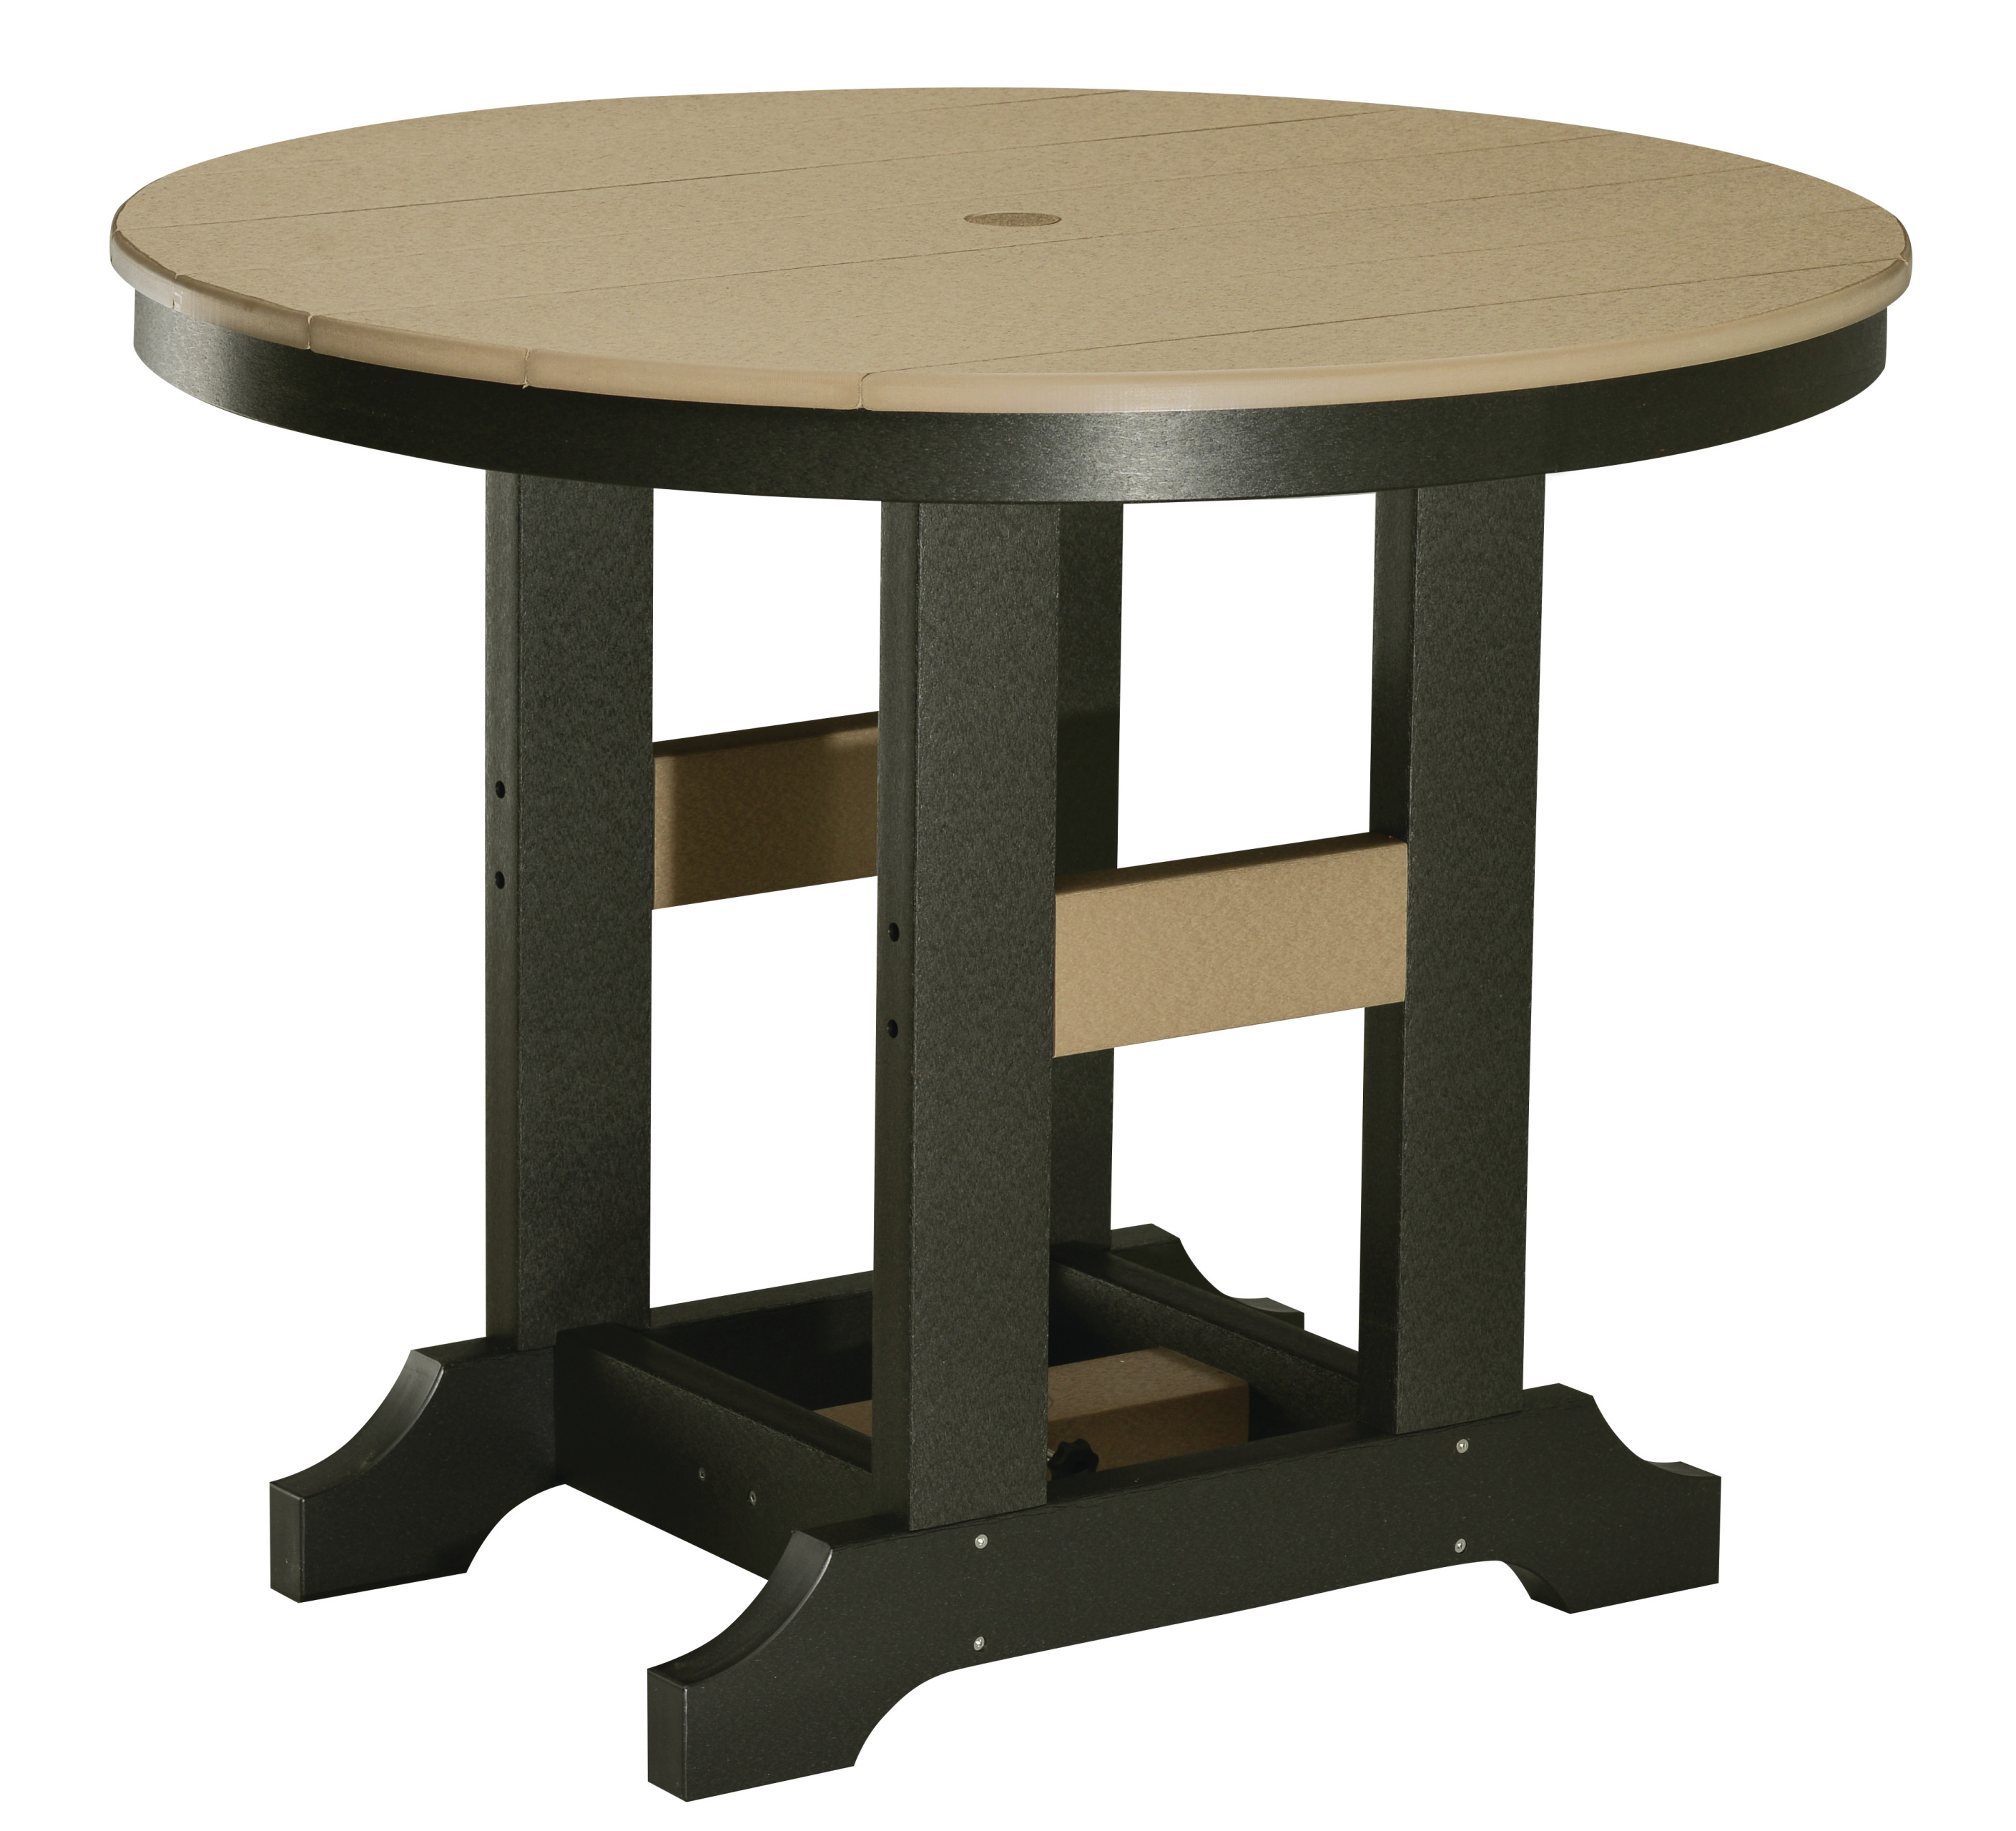 38 Round Dining Tables REGULAR DINING HEIGHT